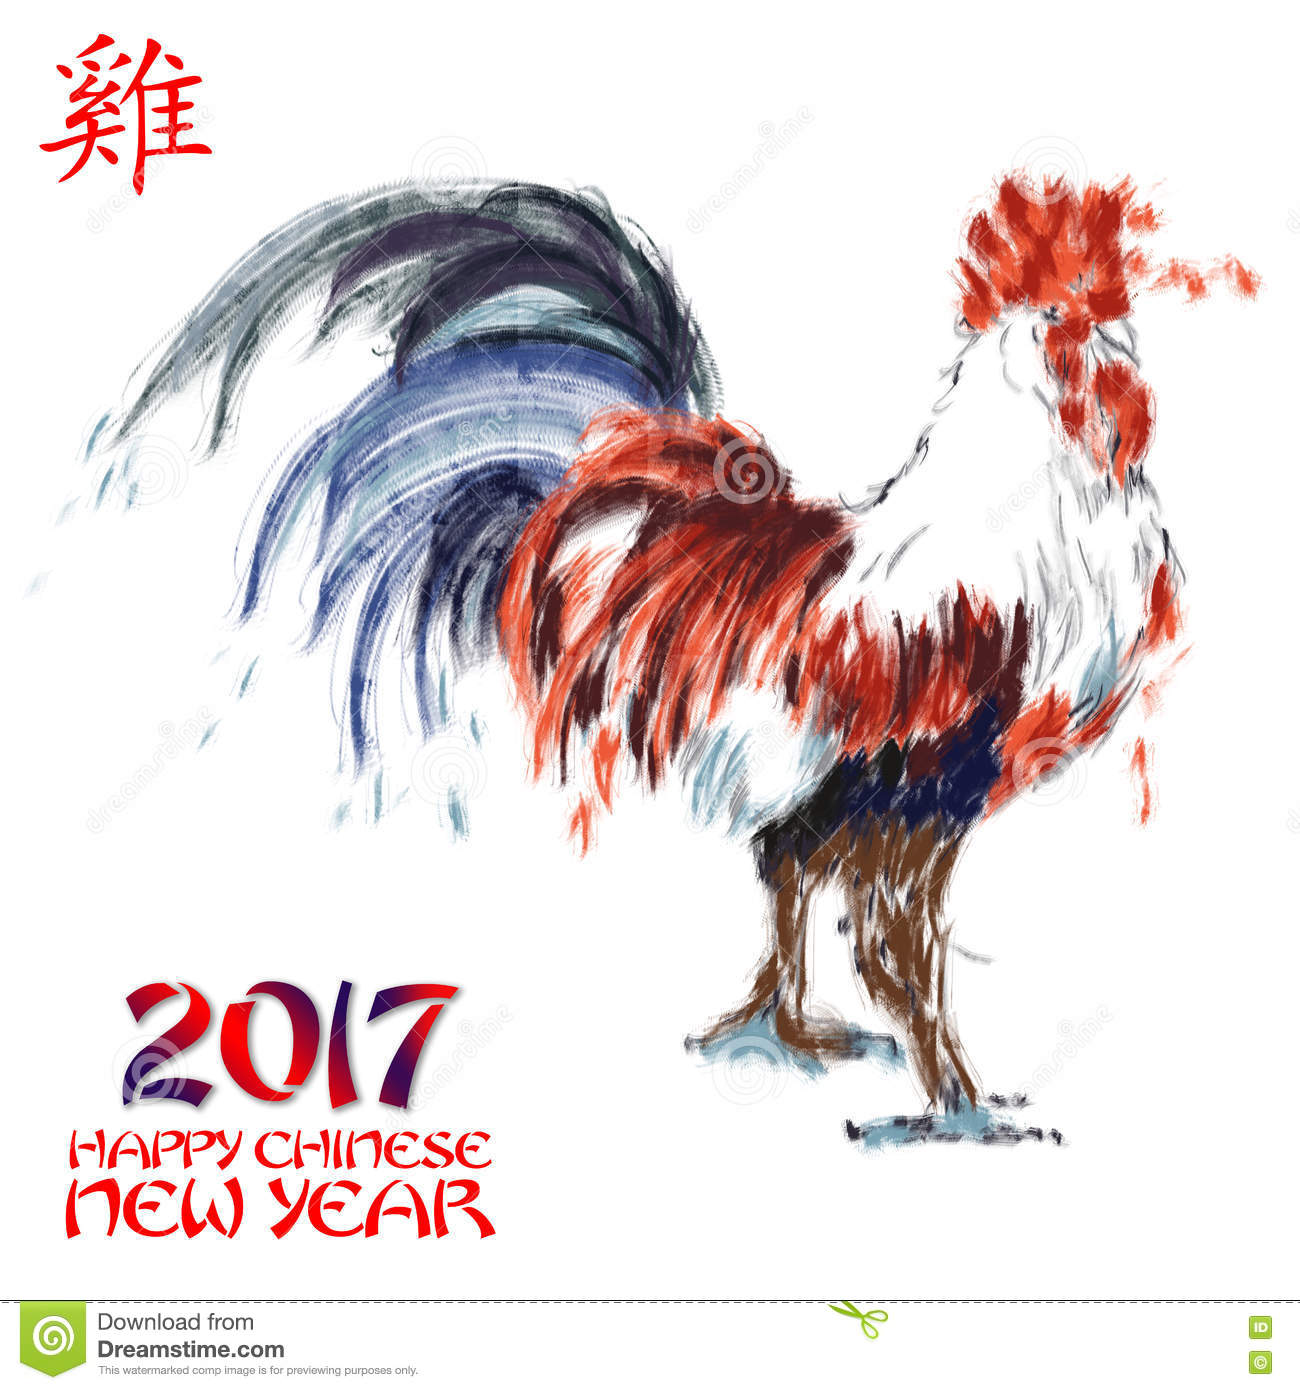 An abstract Chinese New Year Illustration